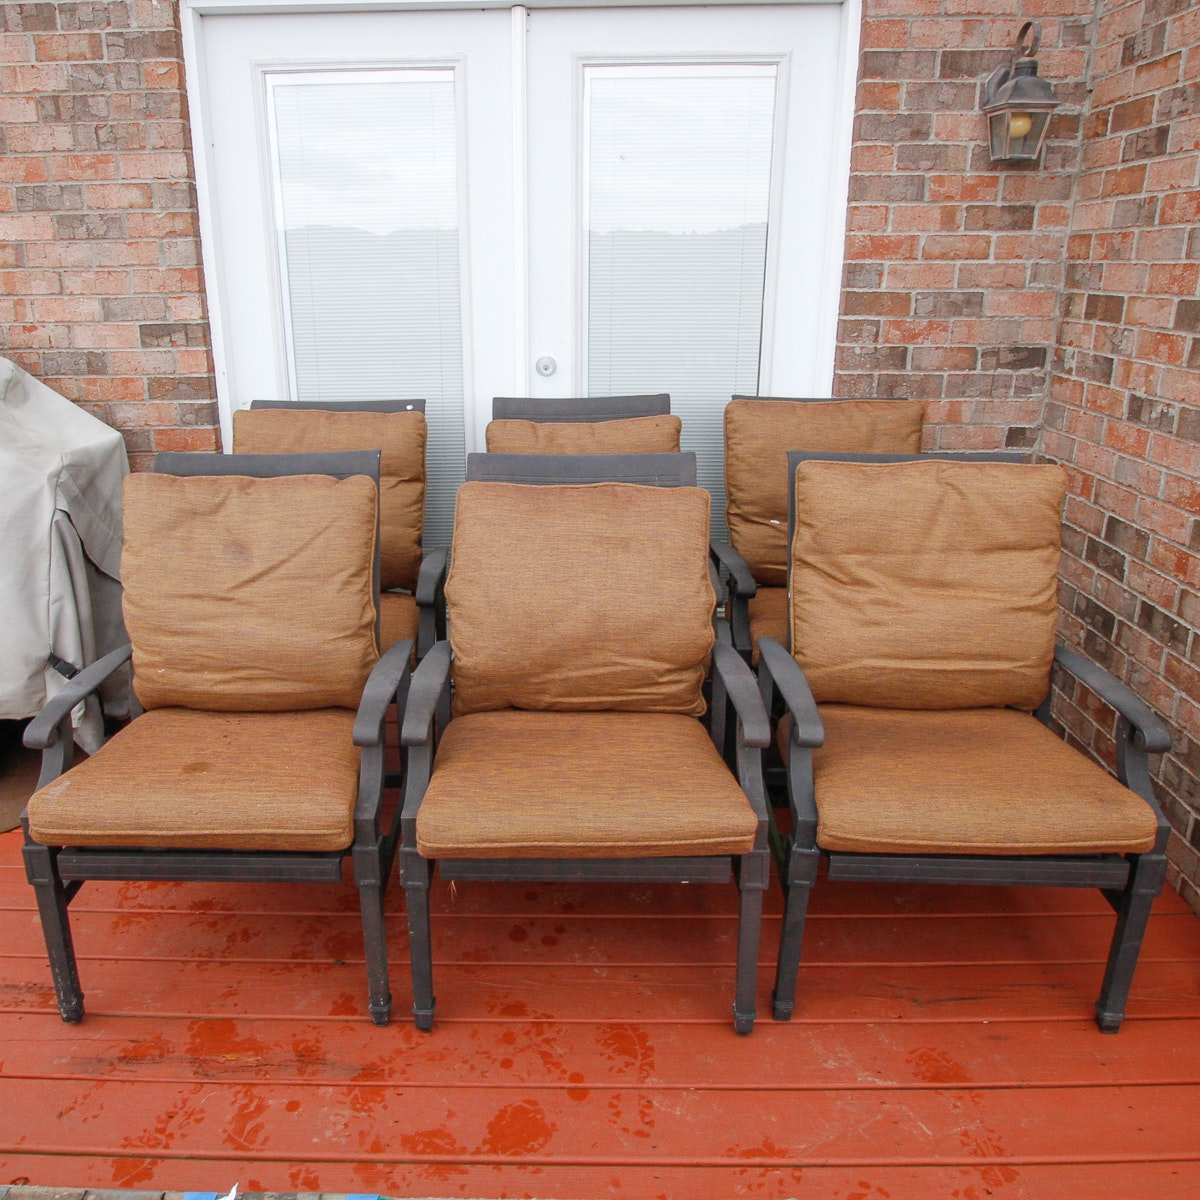 Cast Aluminum Patio Dining Chairs with Sunbrella Cushions